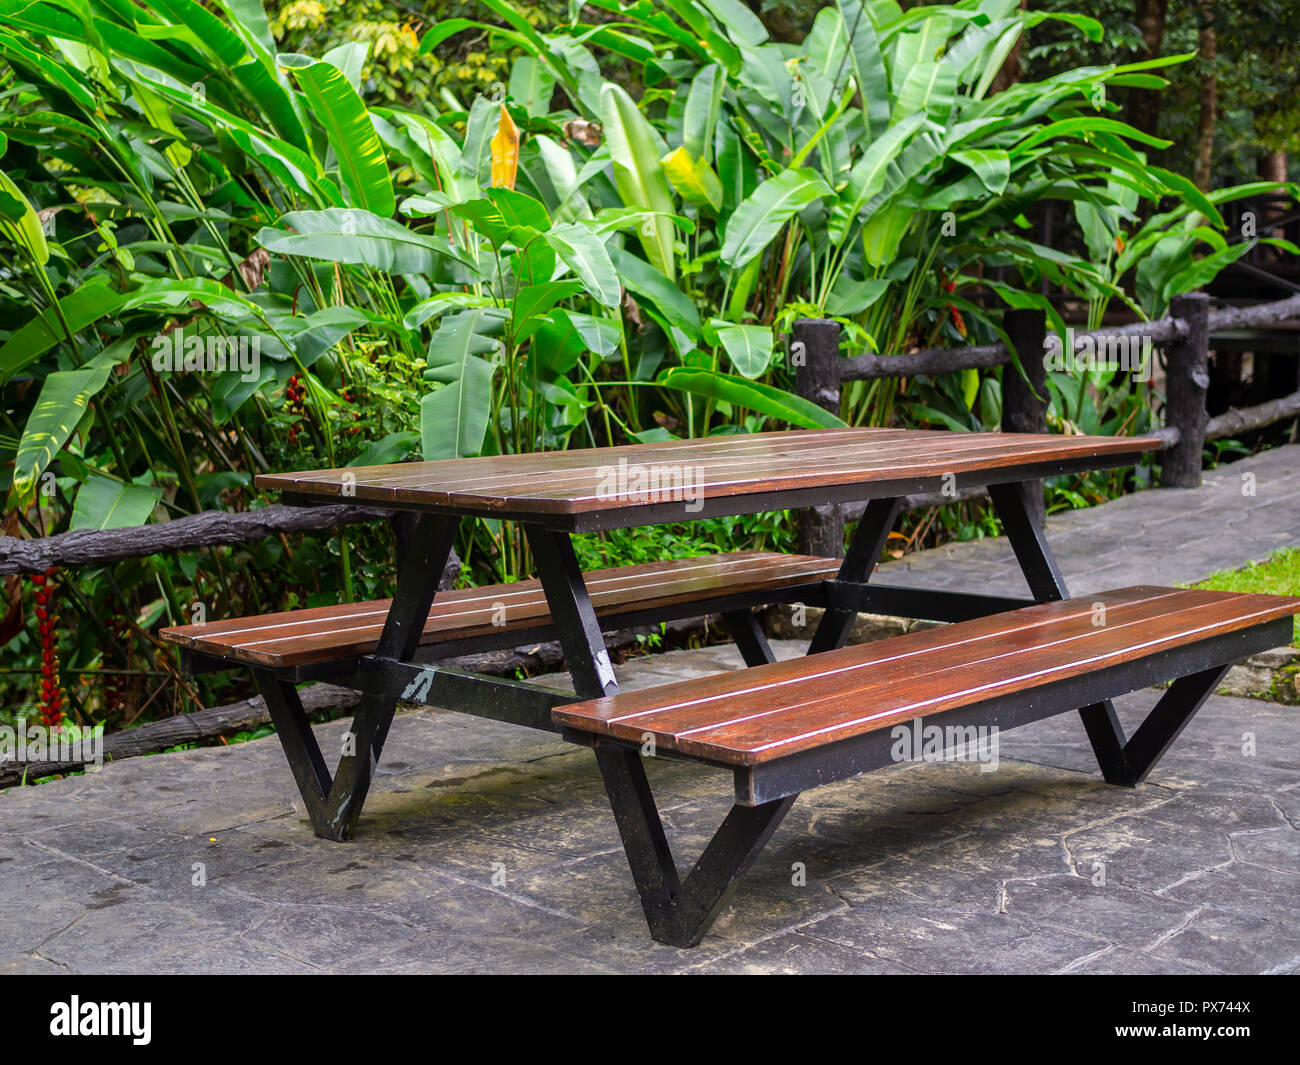 Wooden patio chair reclaimed wood outdoor dining table on tropical rainforest background. & Wooden patio chair reclaimed wood outdoor dining table on tropical ...